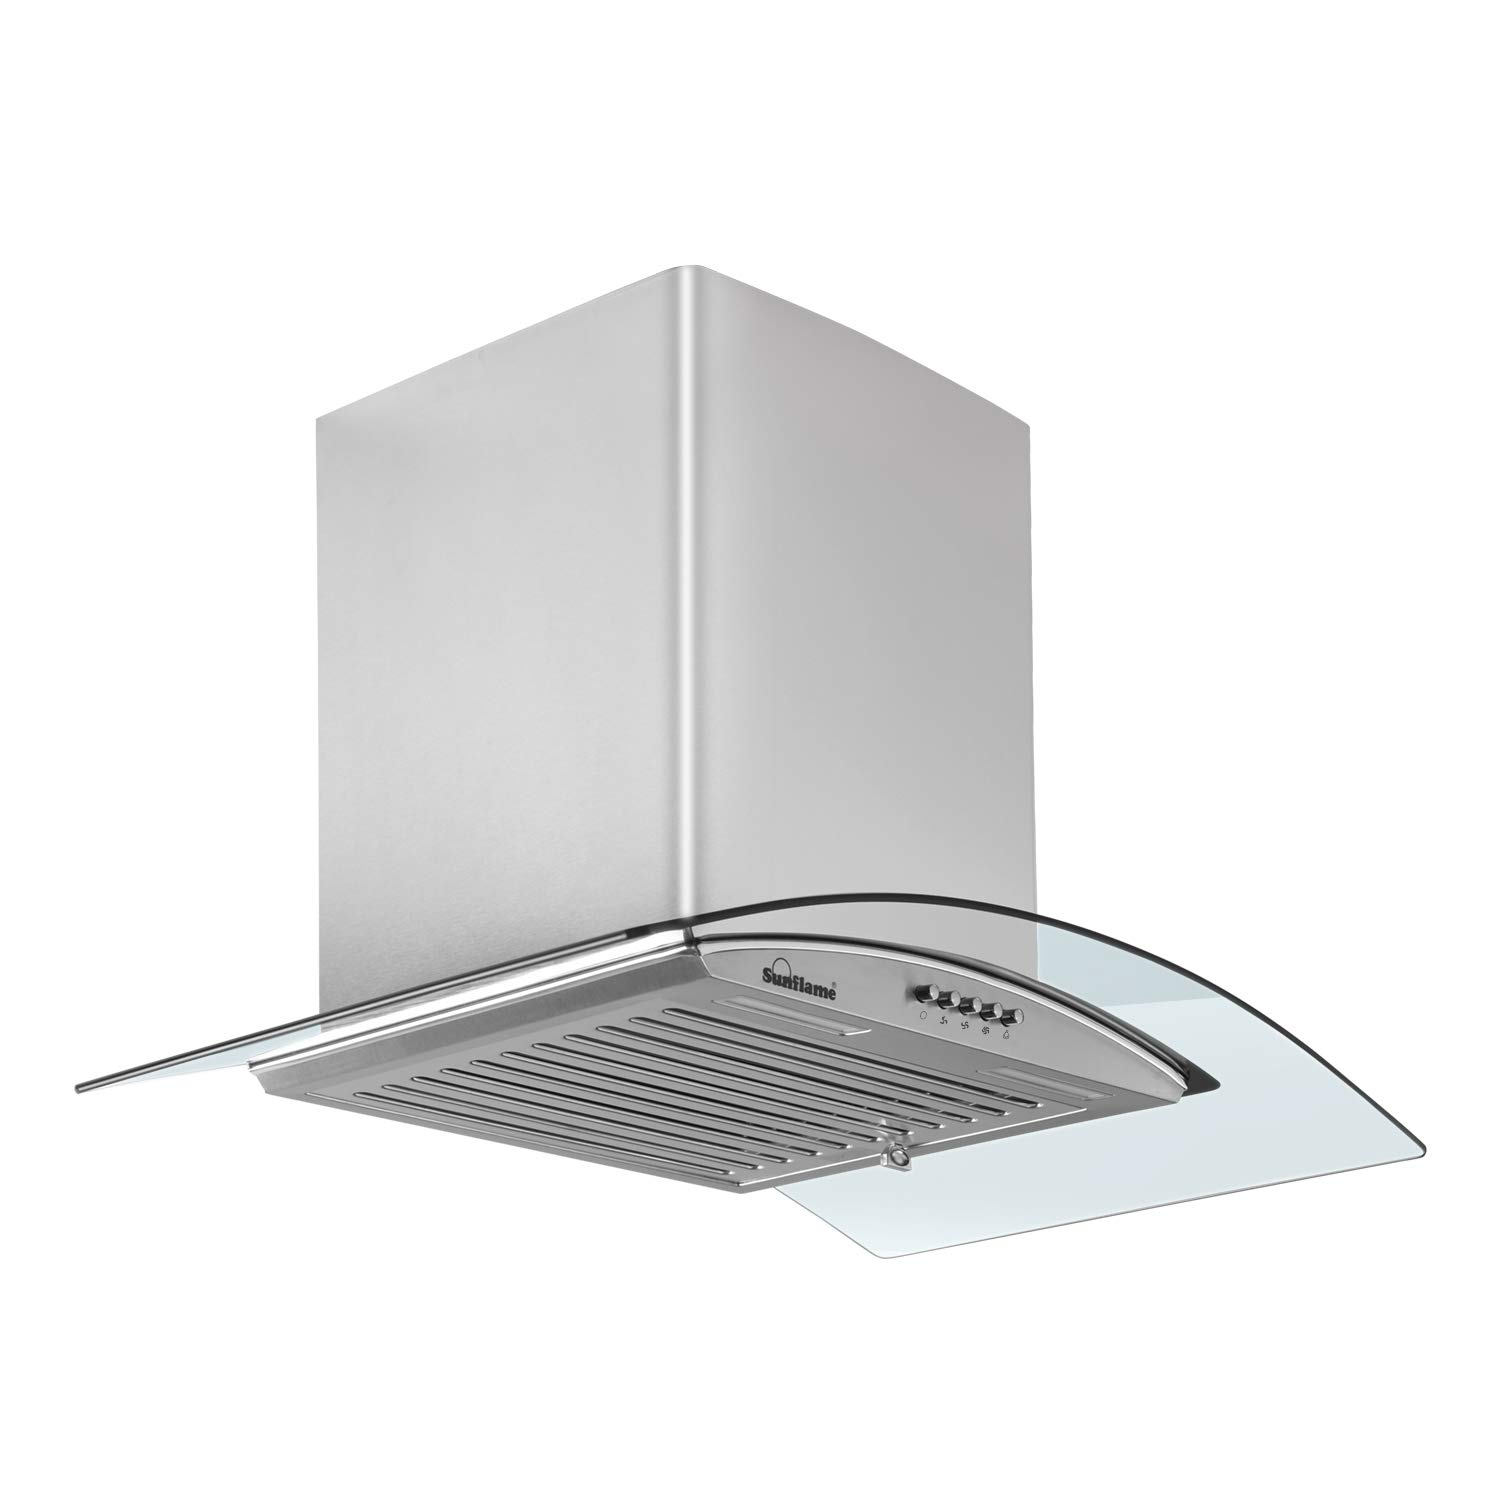 Sunflame 60 cm 1100 m³/hr Curved Glass Kitchen Chimney